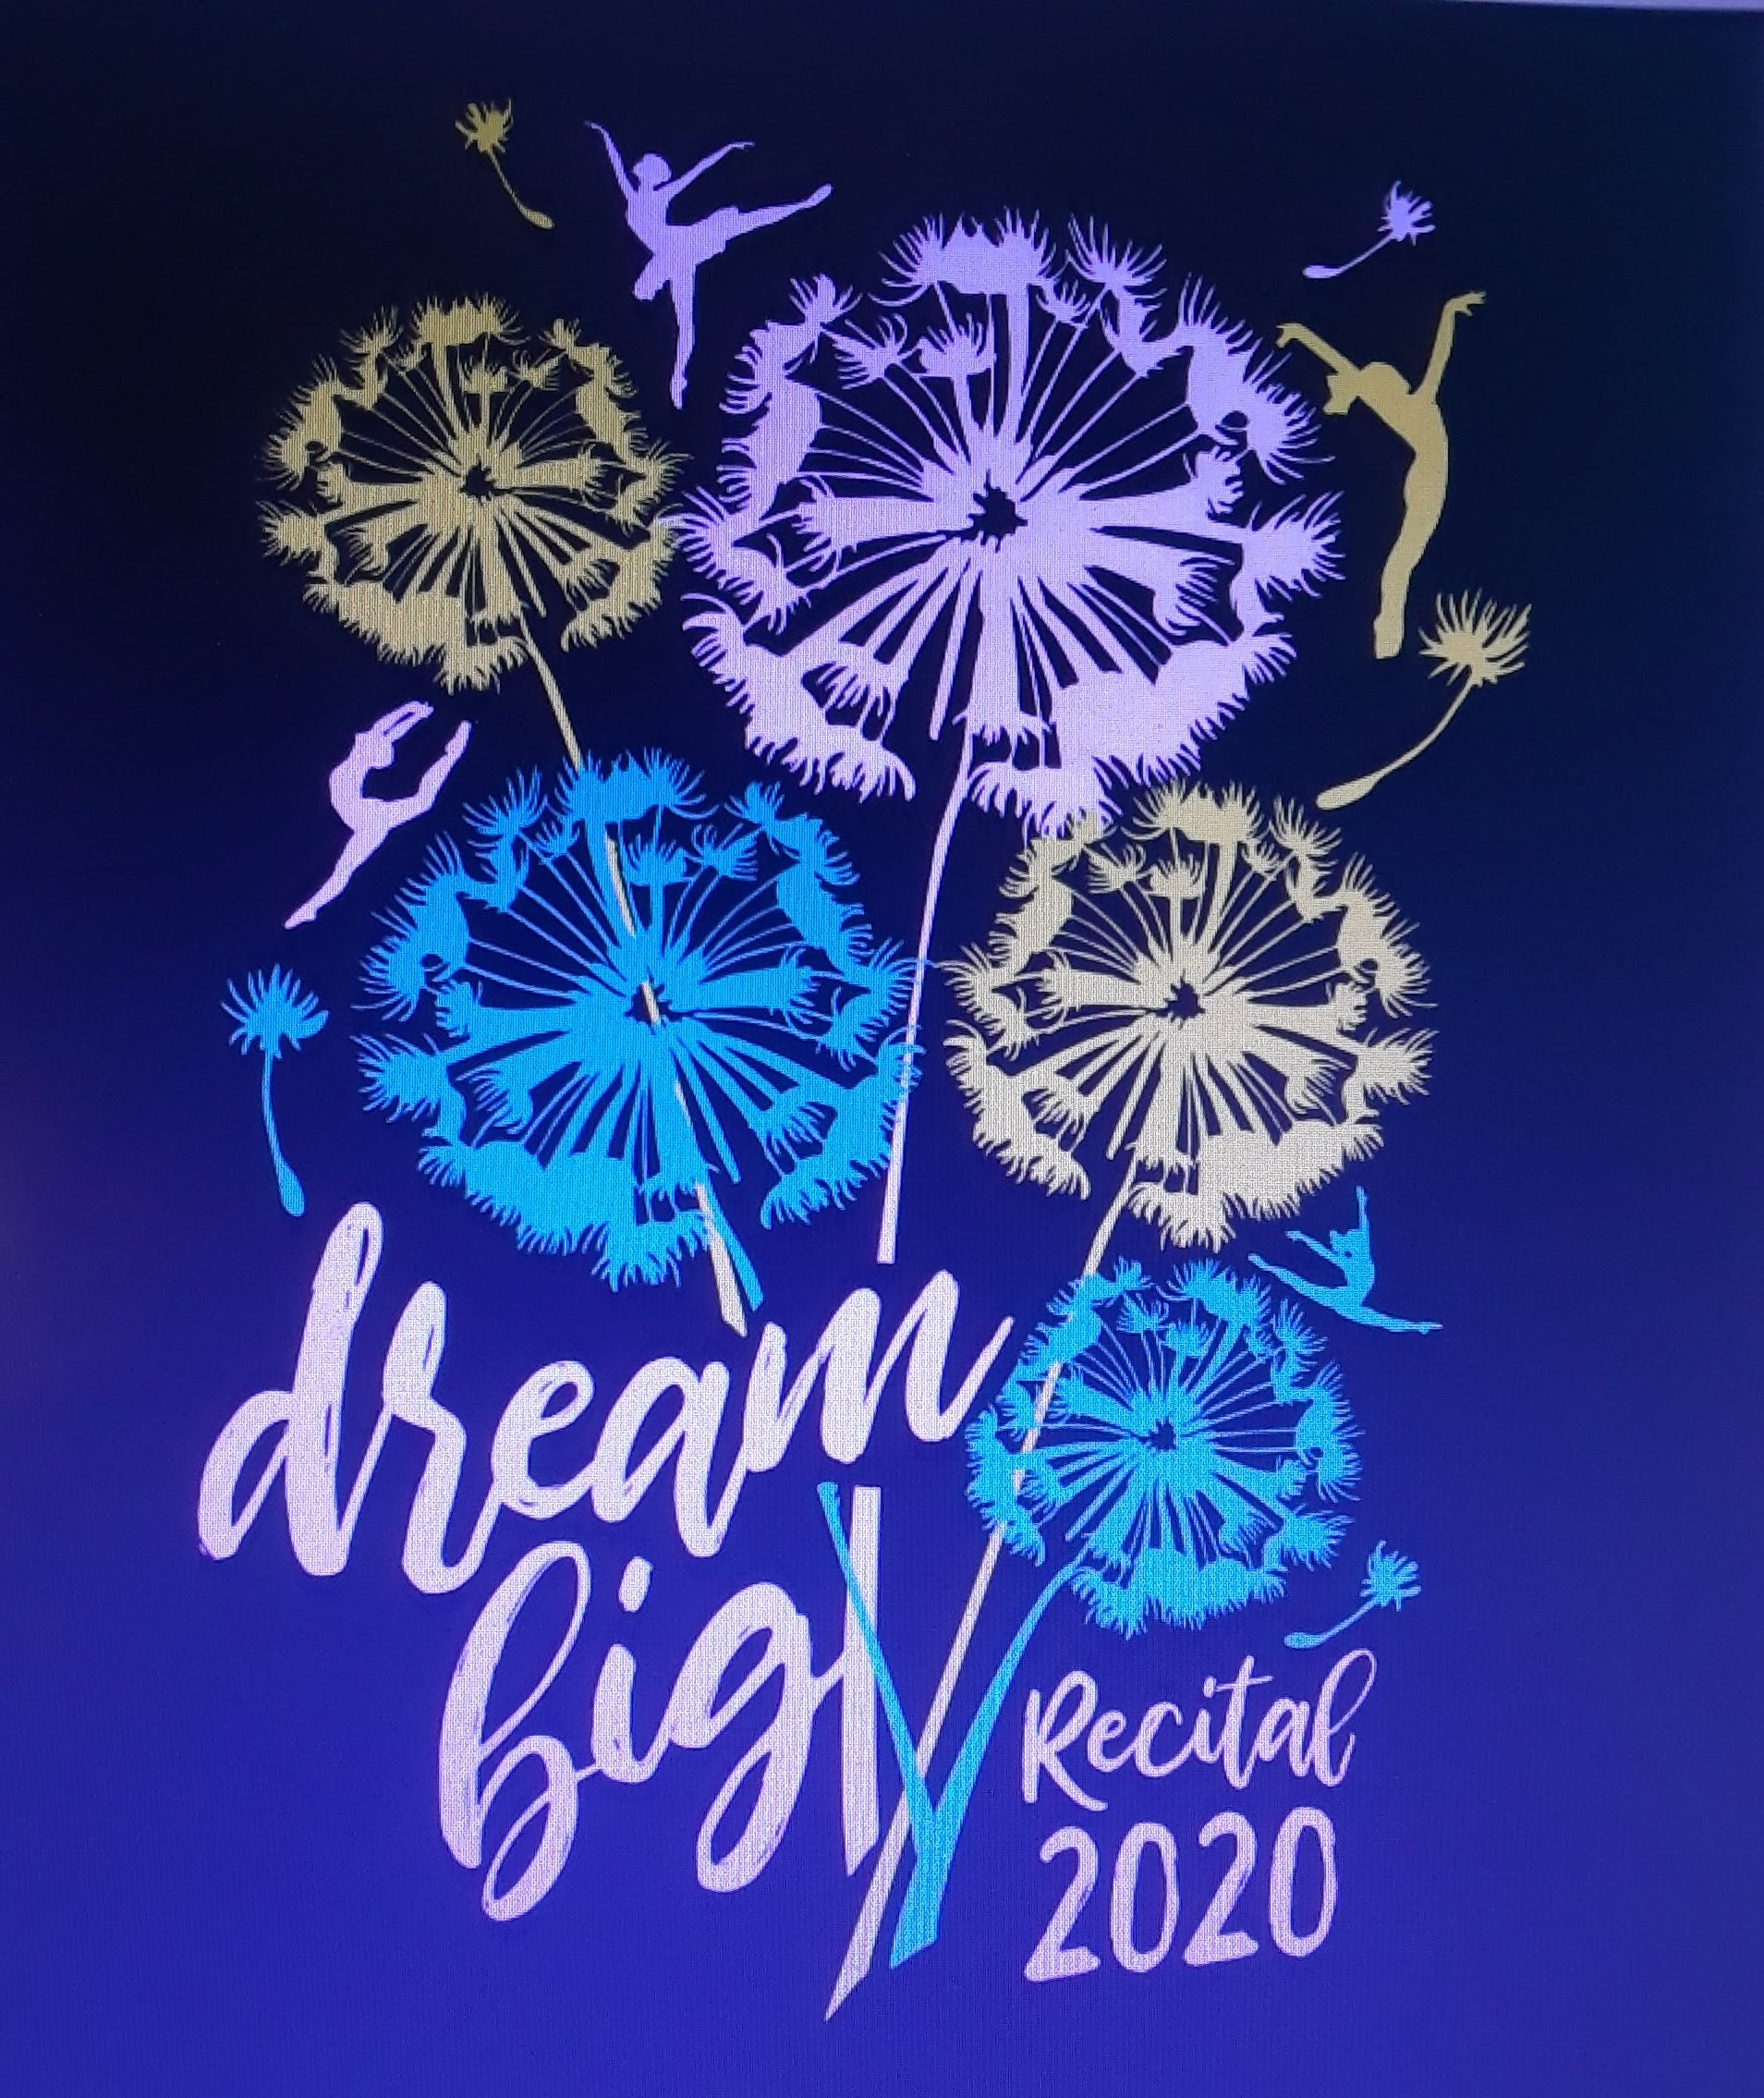 Dream Big recital 2020